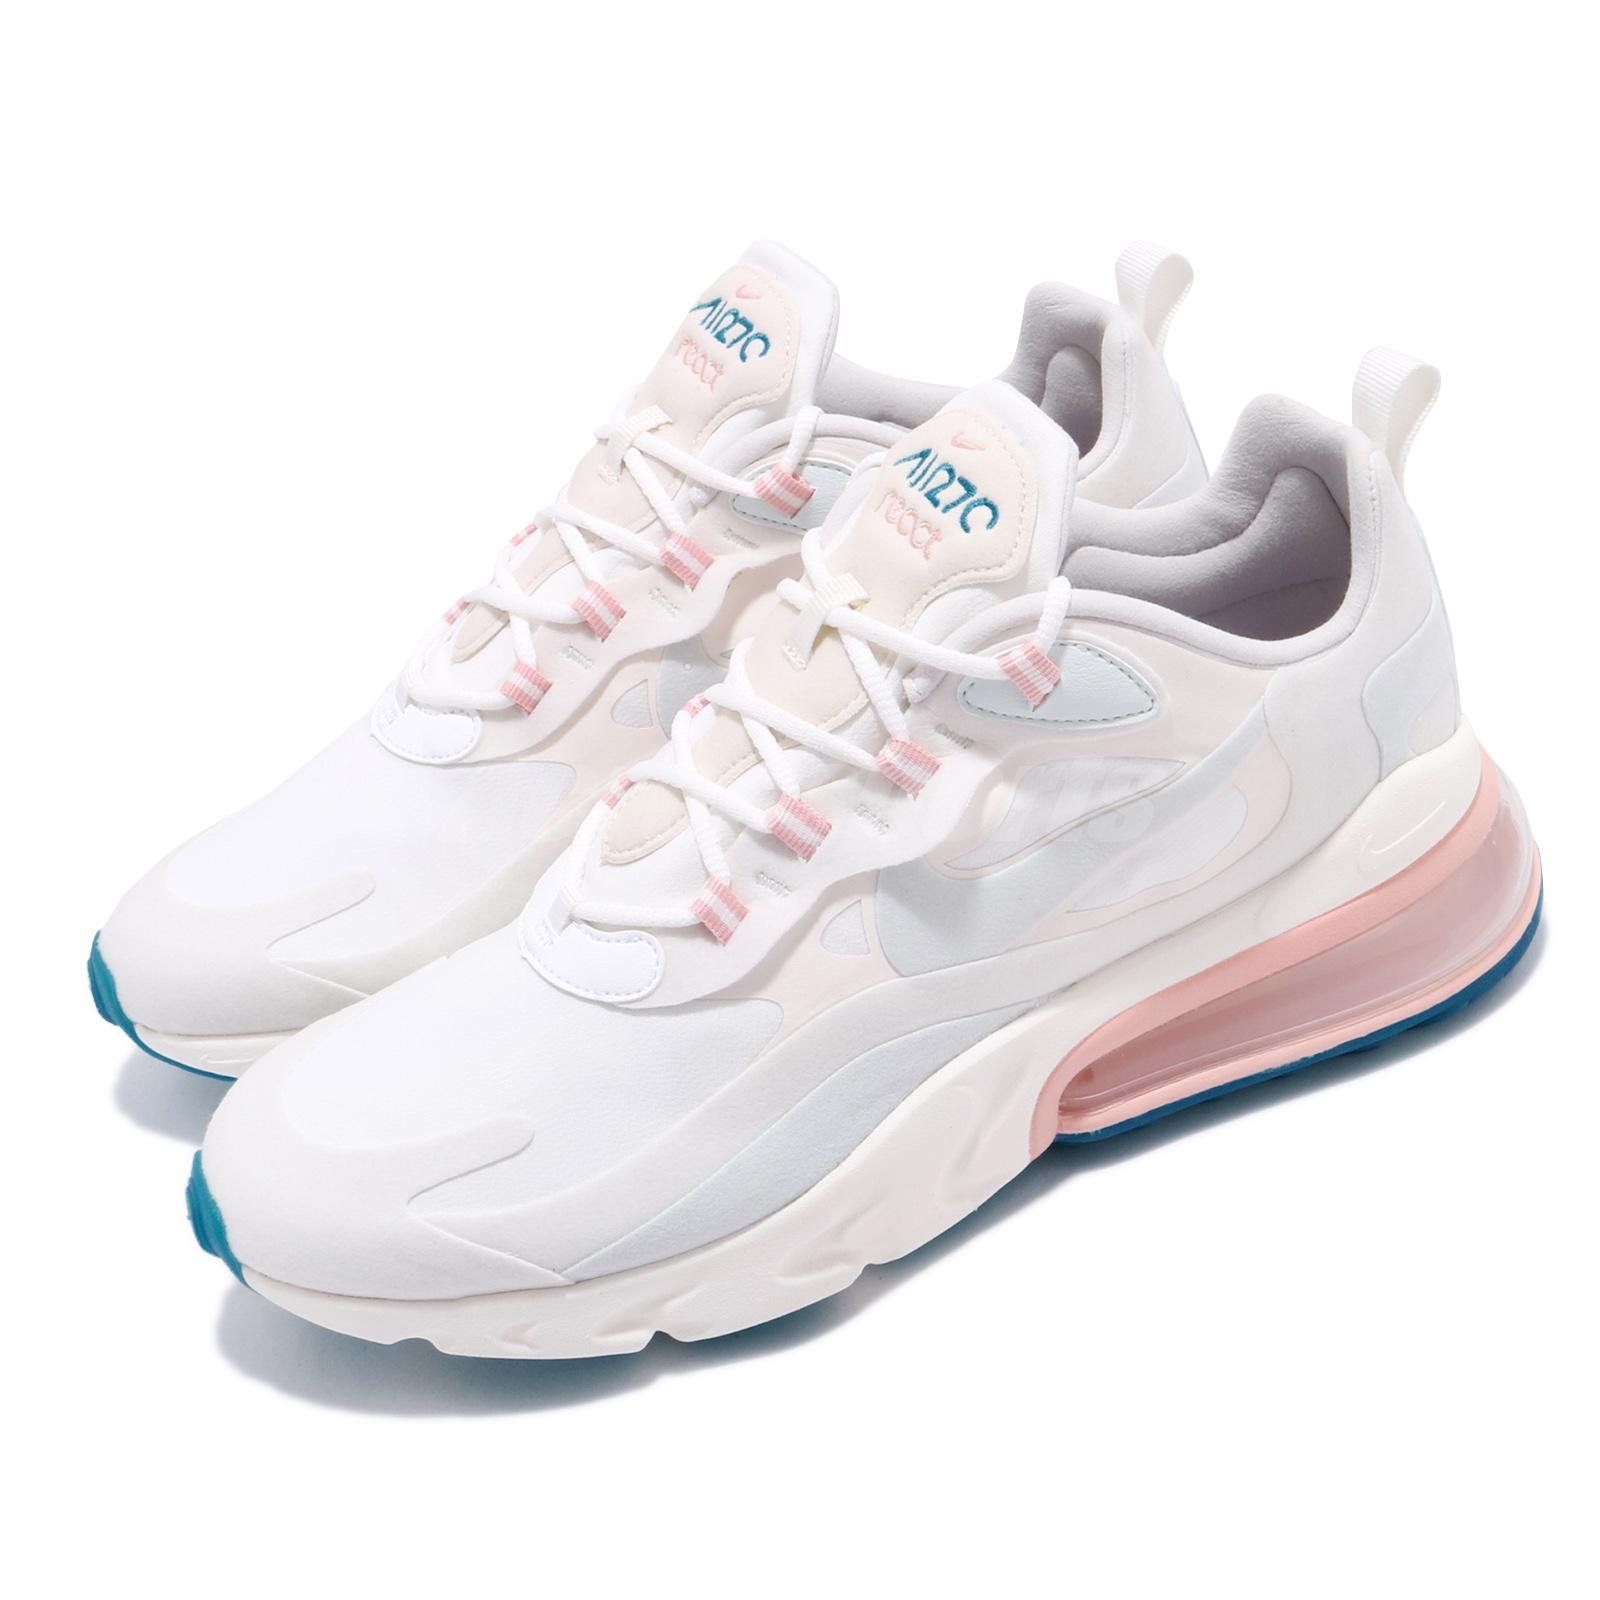 Comparación Agarrar para agregar  Nike Air Max 270 React Summit White Blue Pink Mens Running Shoes ...